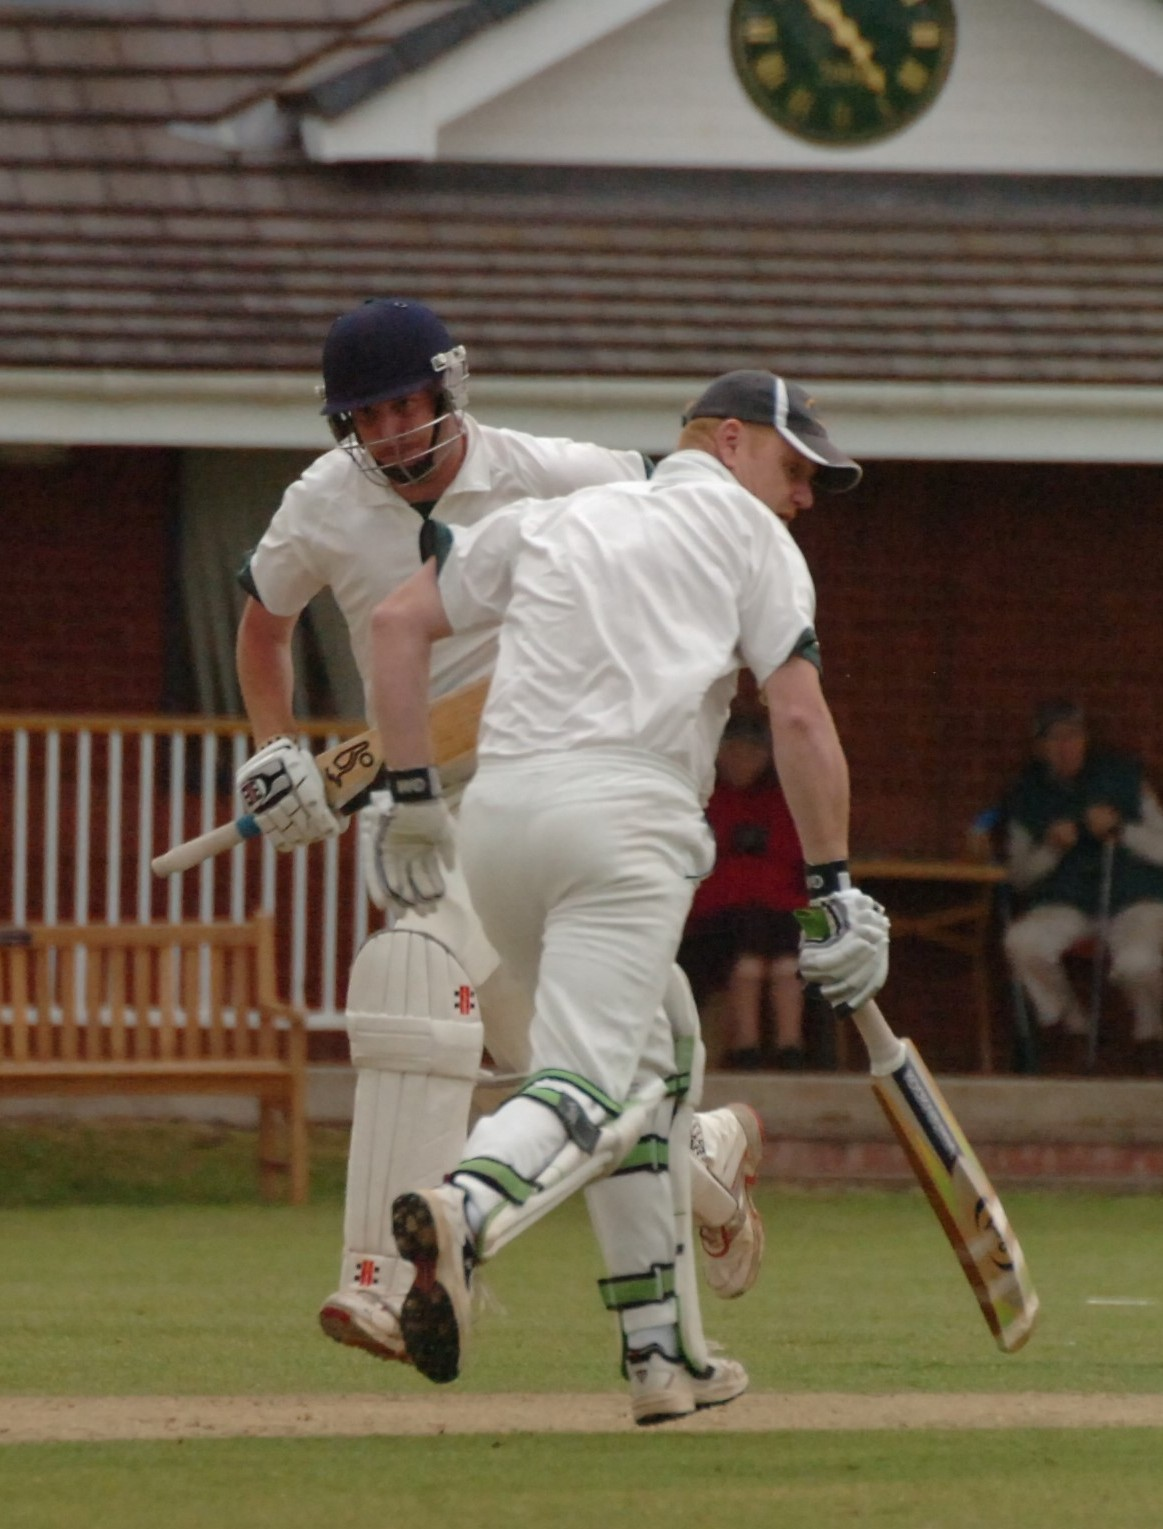 North Bradley cricket match to help stump cancer